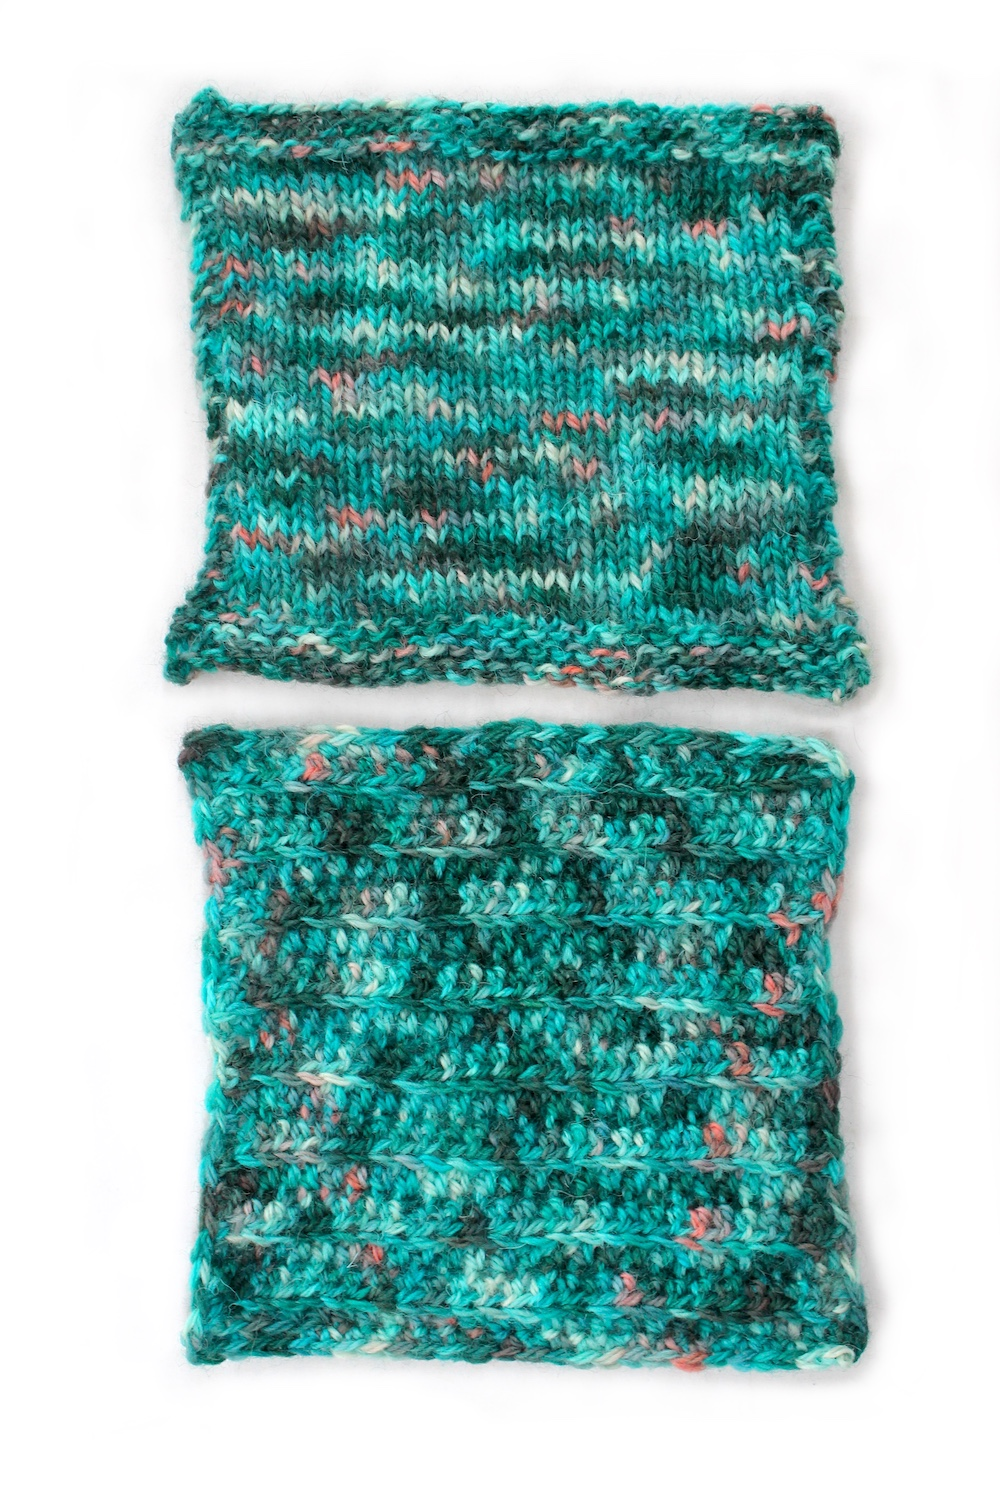 Knit and crochet swatches of the Avalon colourway